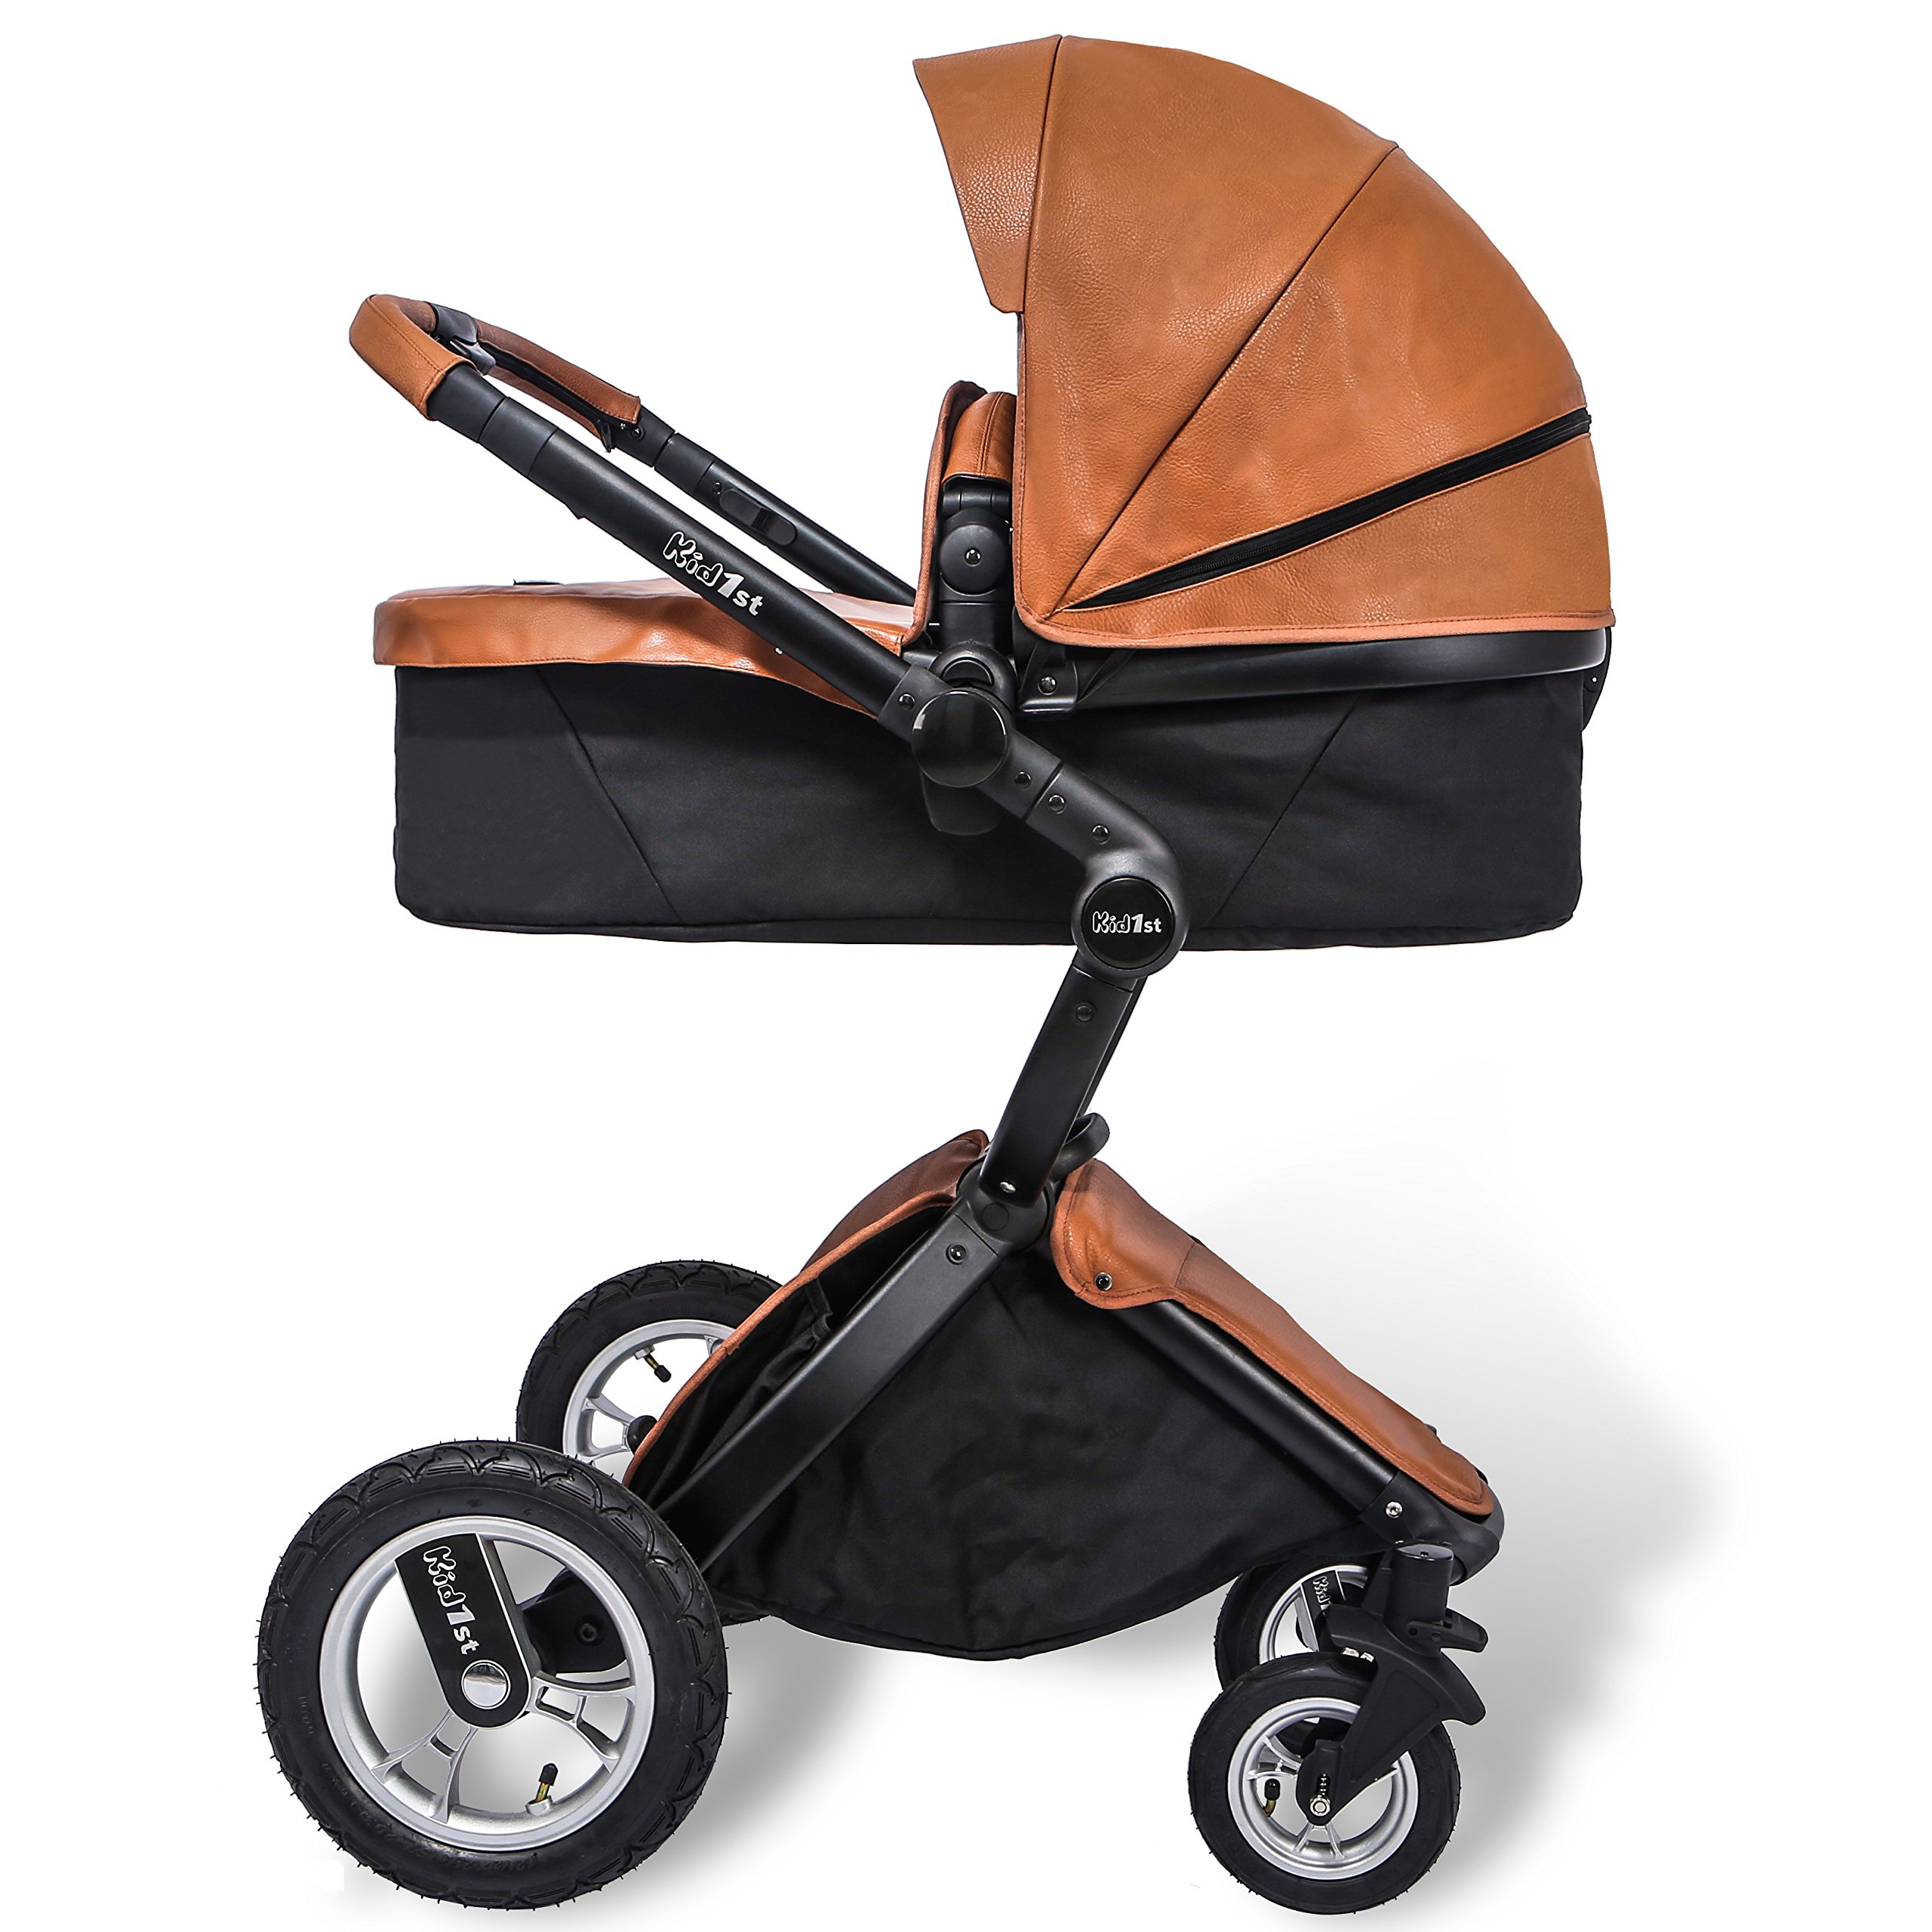 KID1st elegant all-in-1 high landscape All-Terrain Egg Shell infant Baby Stroller Travel System toddler pushchair  baby pram with Carriage Bassinet Combo for HOT MOM (Brown)  by Kid1st (Image #5)